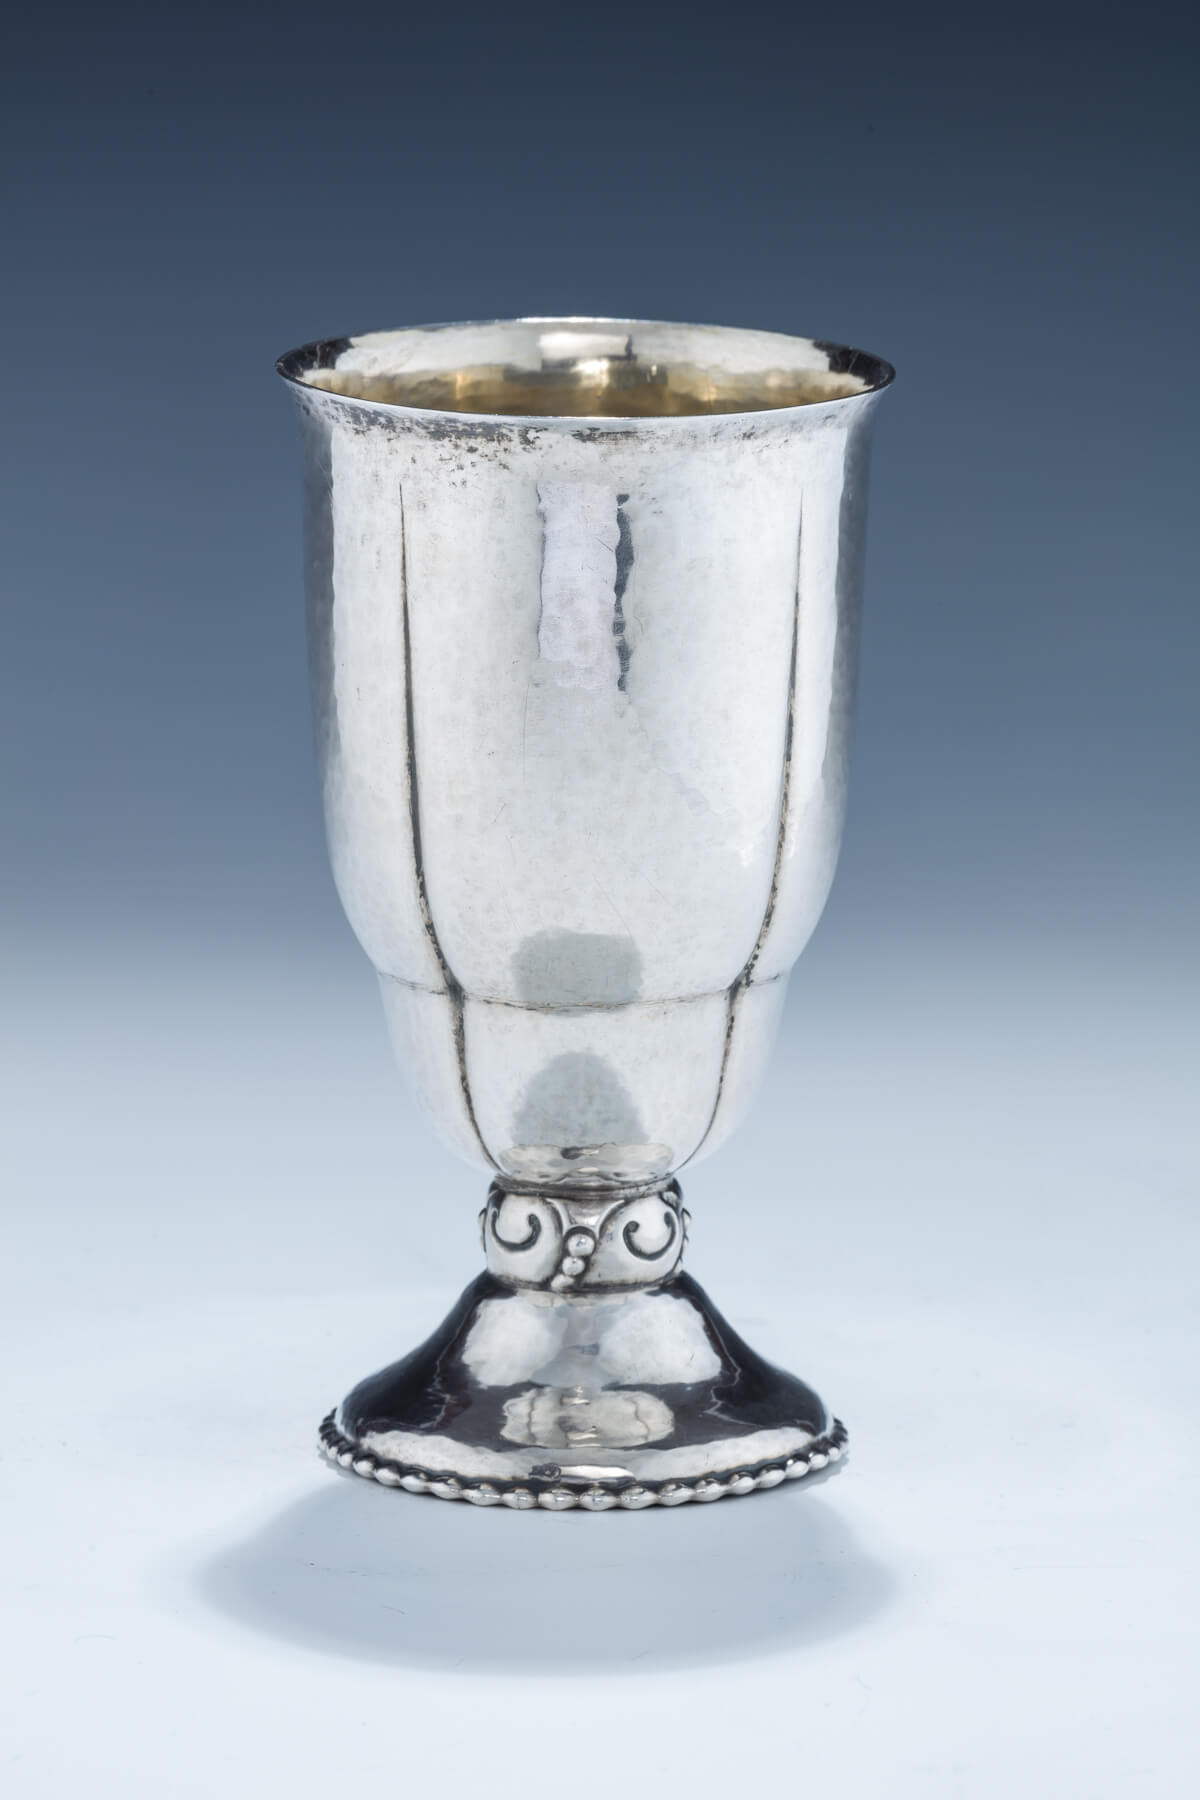 59. Silver Kiddush Goblet by Lazarus Posen